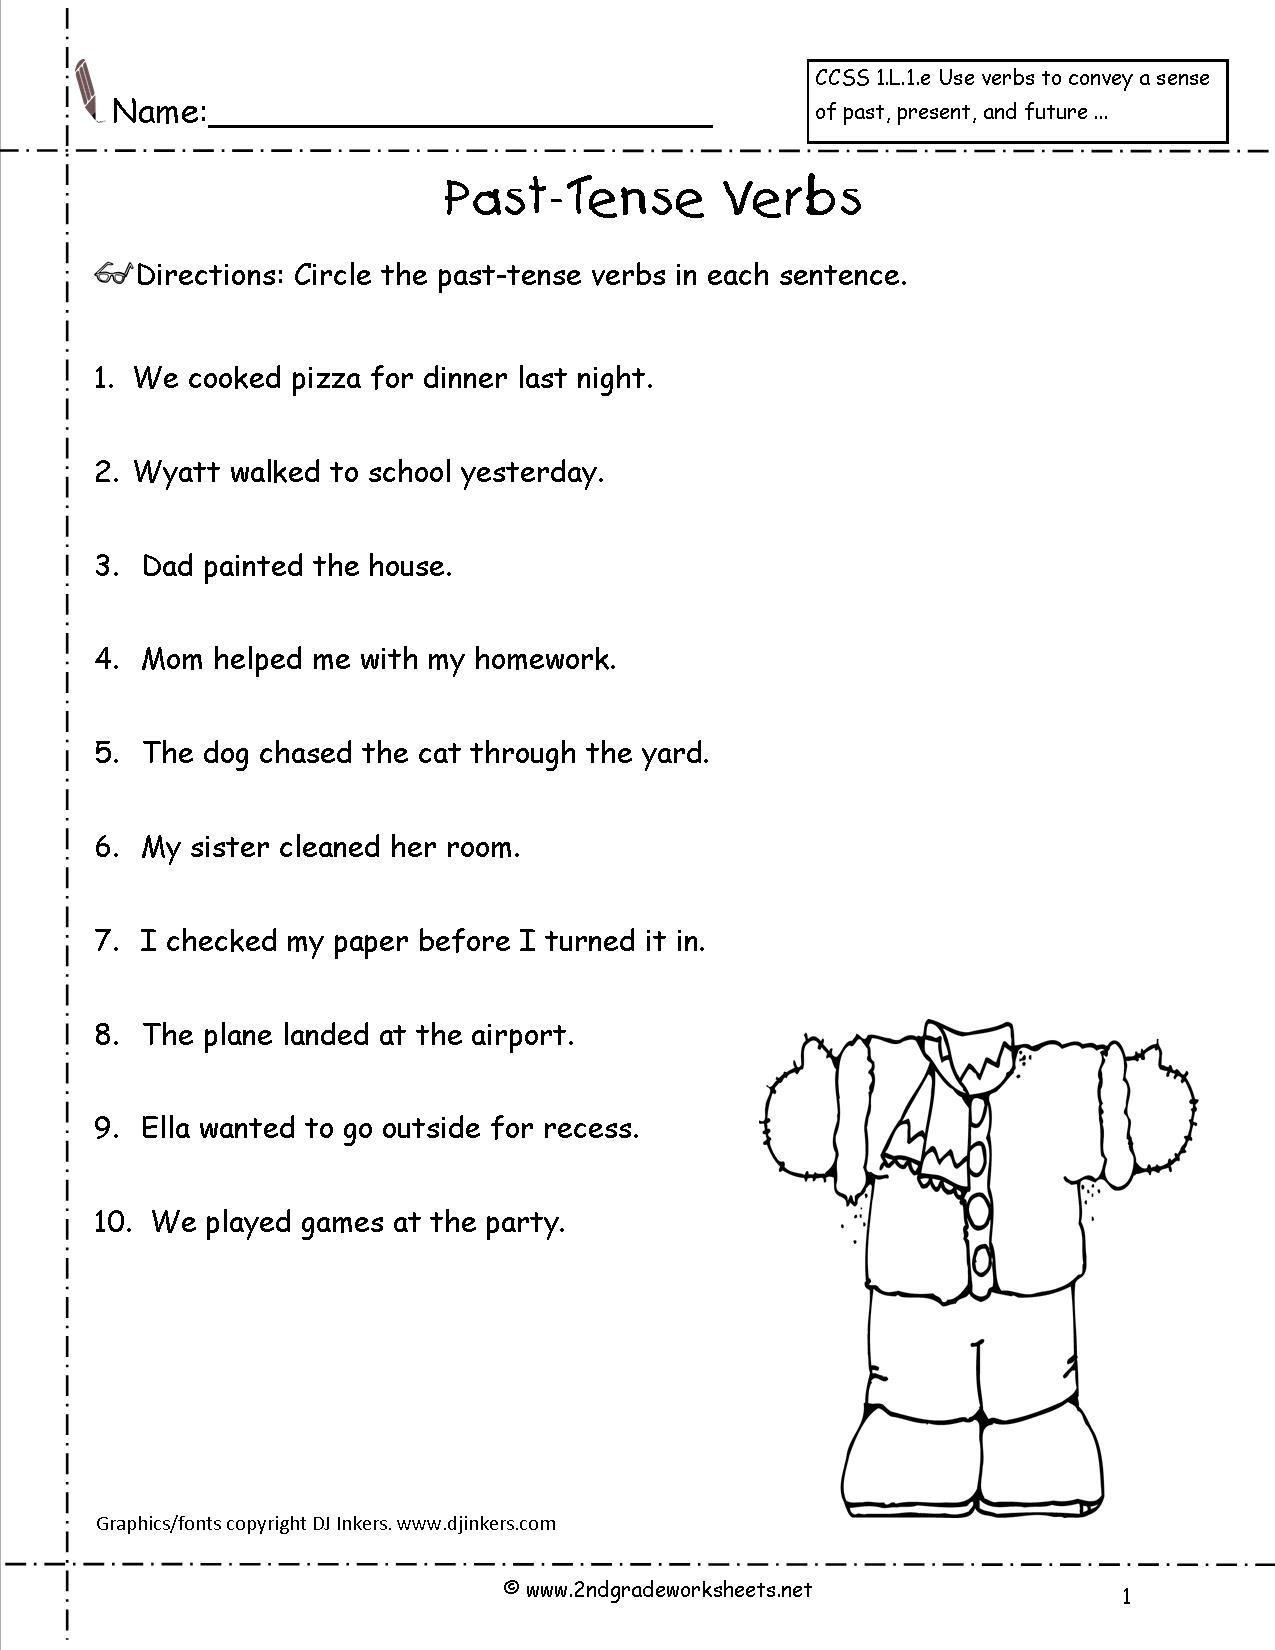 Verb Tense Worksheets 2nd Grade Simple Past Tense Worksheets Grade 3